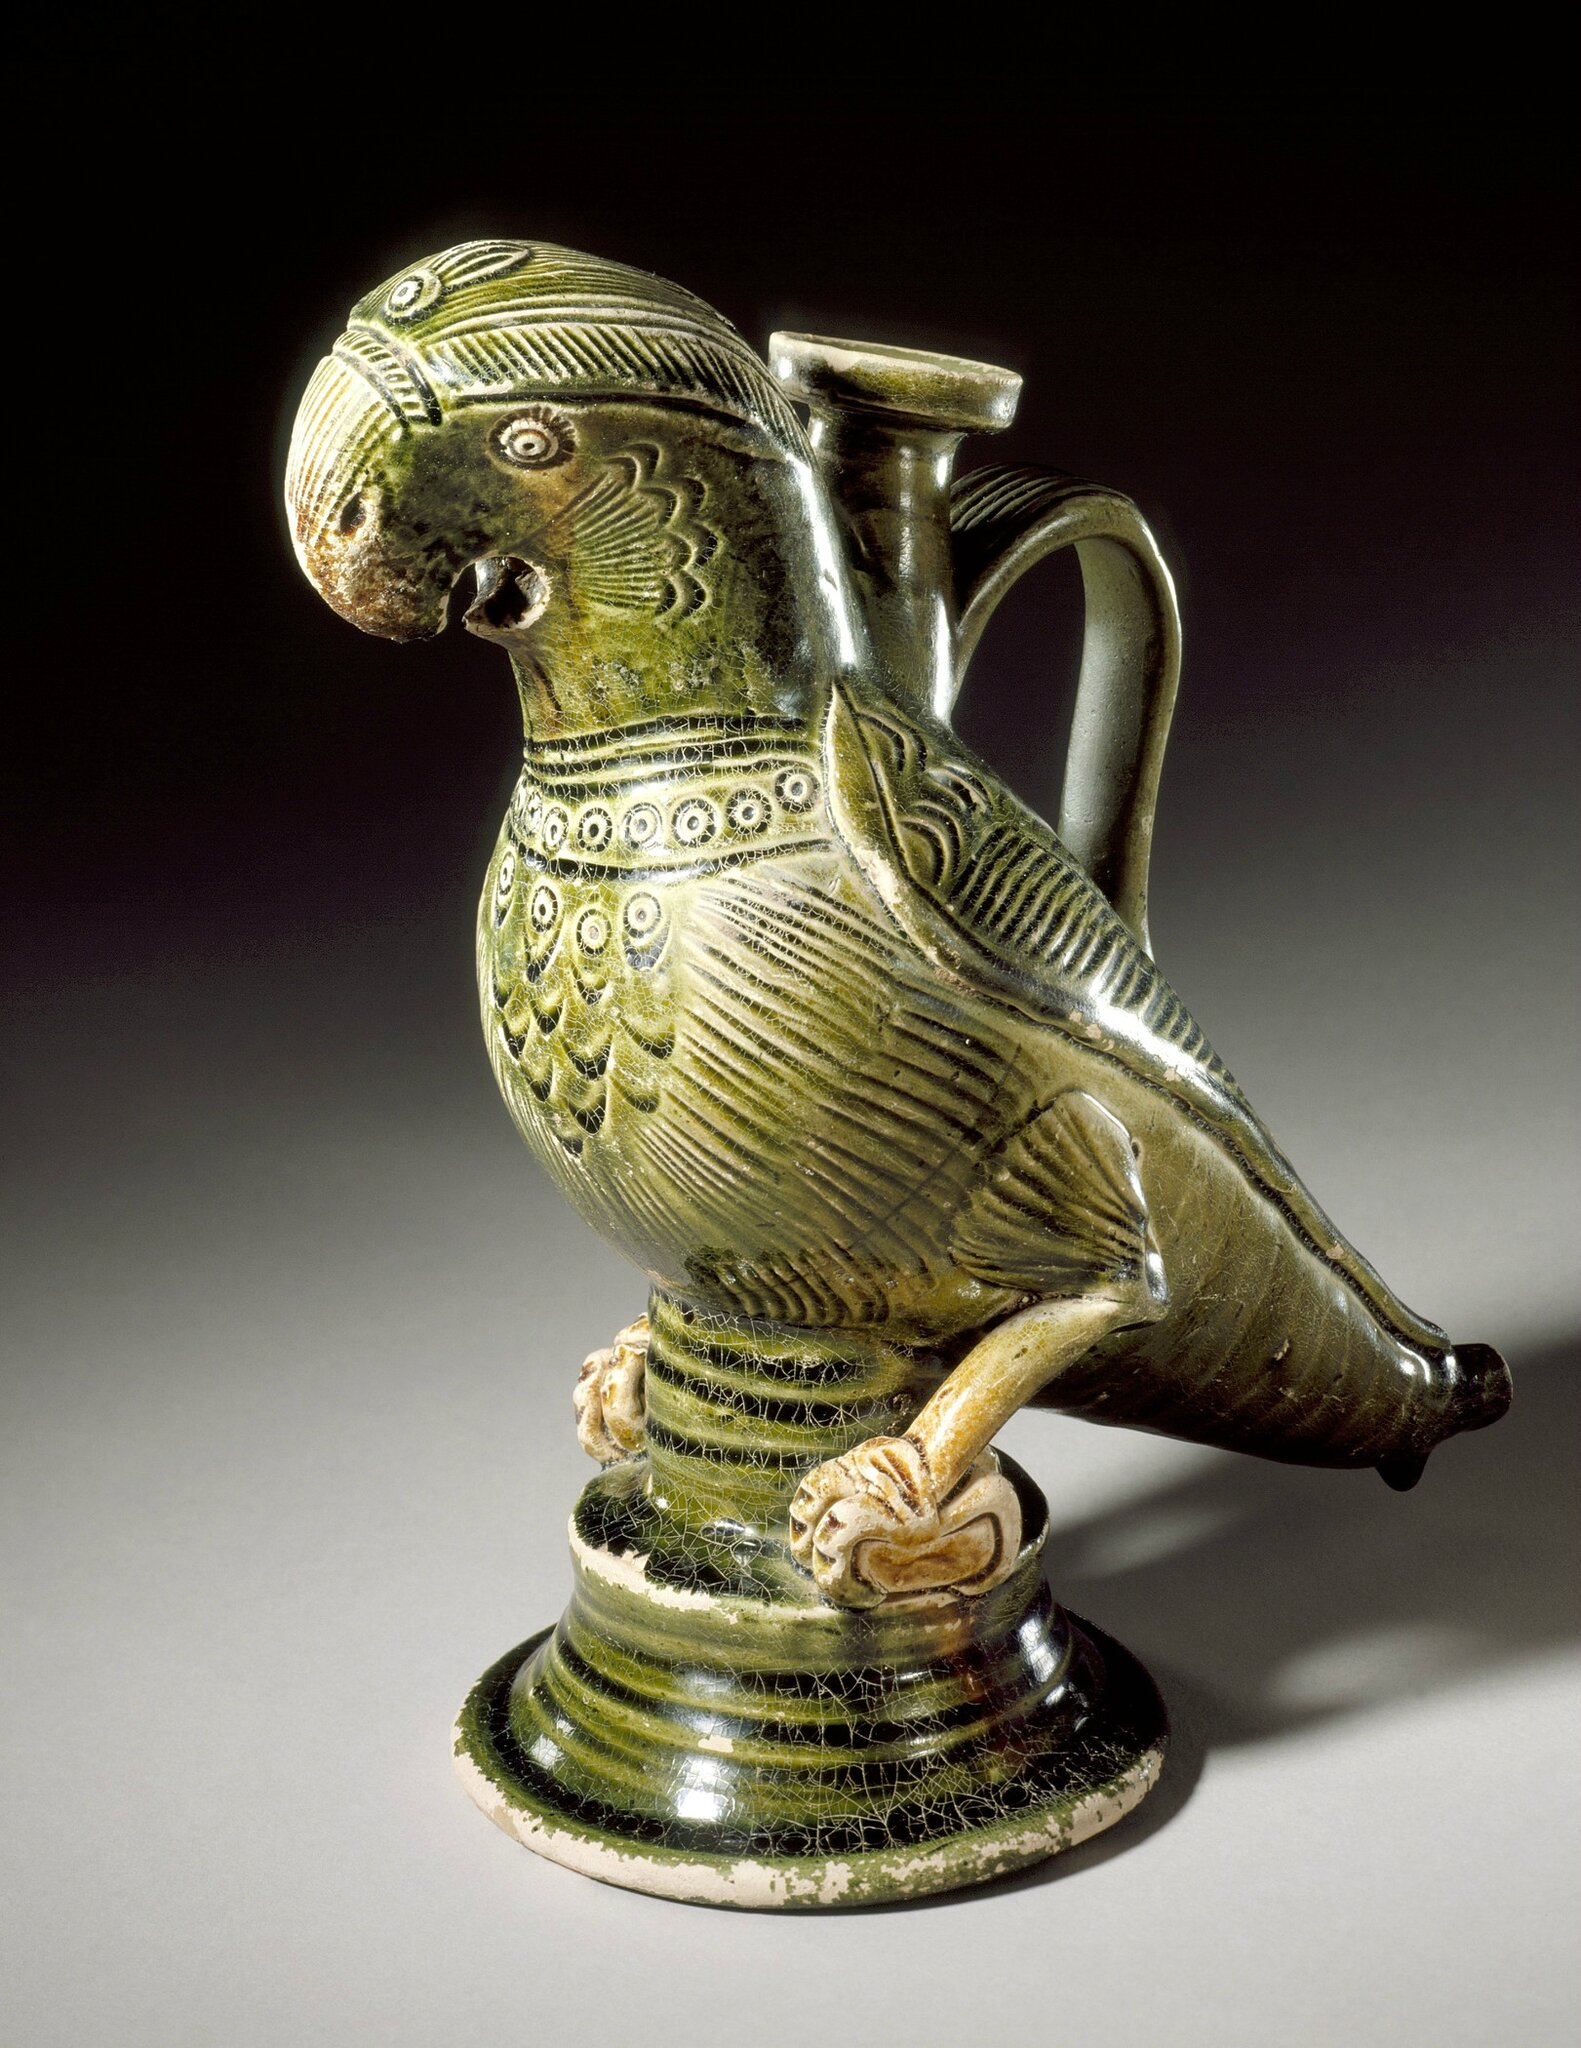 Ewer in the Form of a Parrot, China, probably Hebei Province, early Northern Song dynasty, about 960-1000